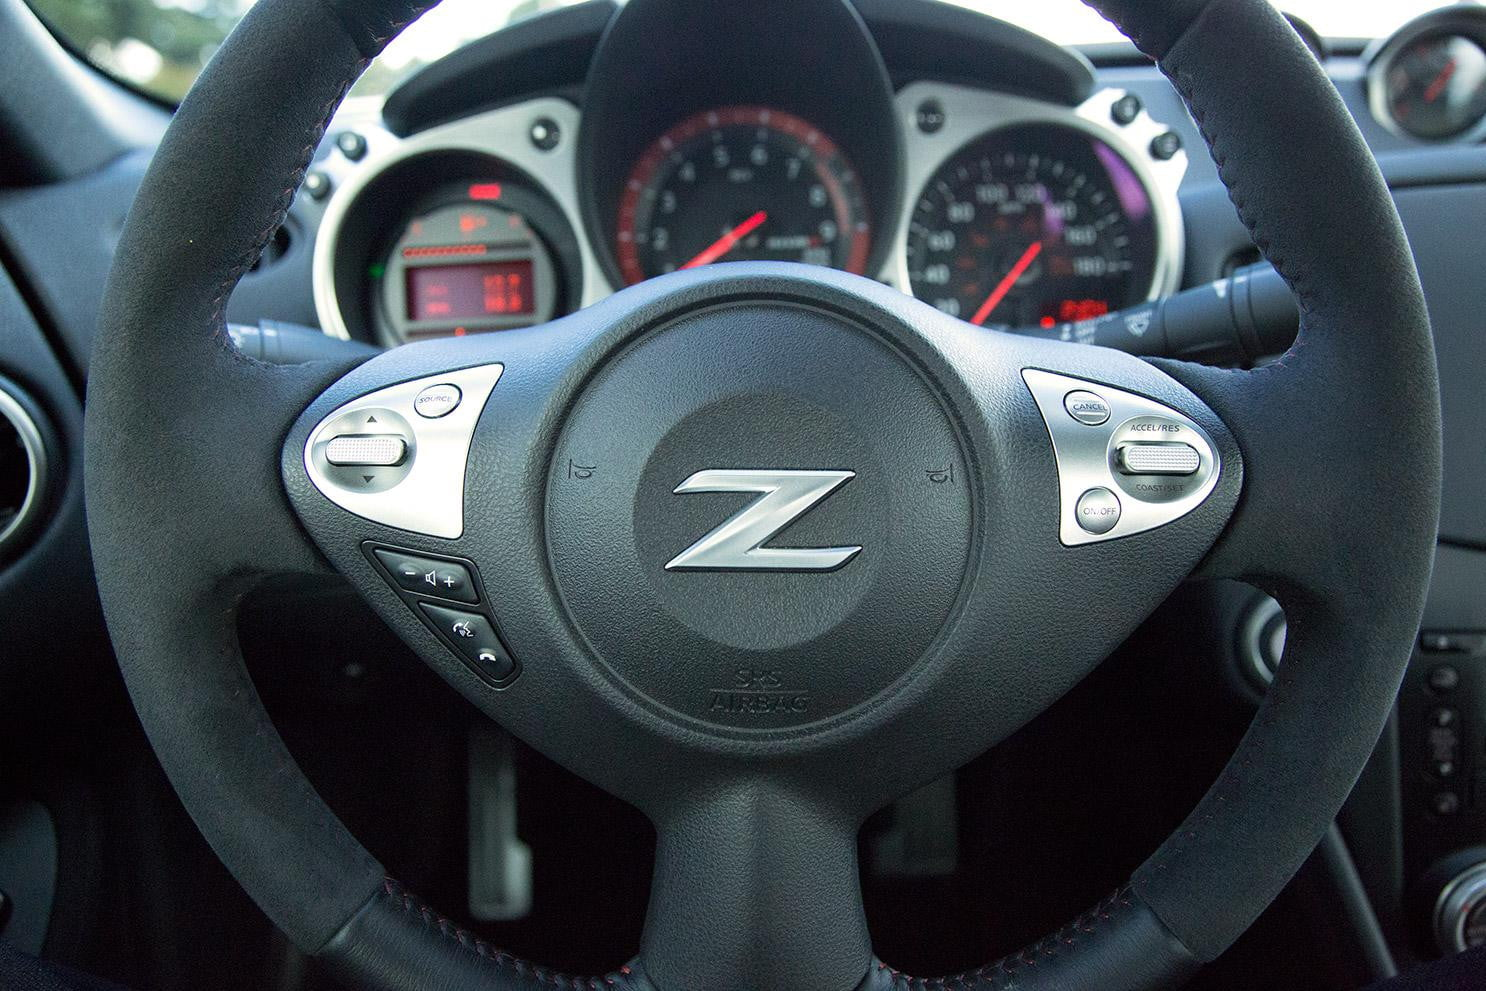 2015 nissan 370z nismo review digital trends 2014 nissan 370z nismo steering wheel vanachro Gallery